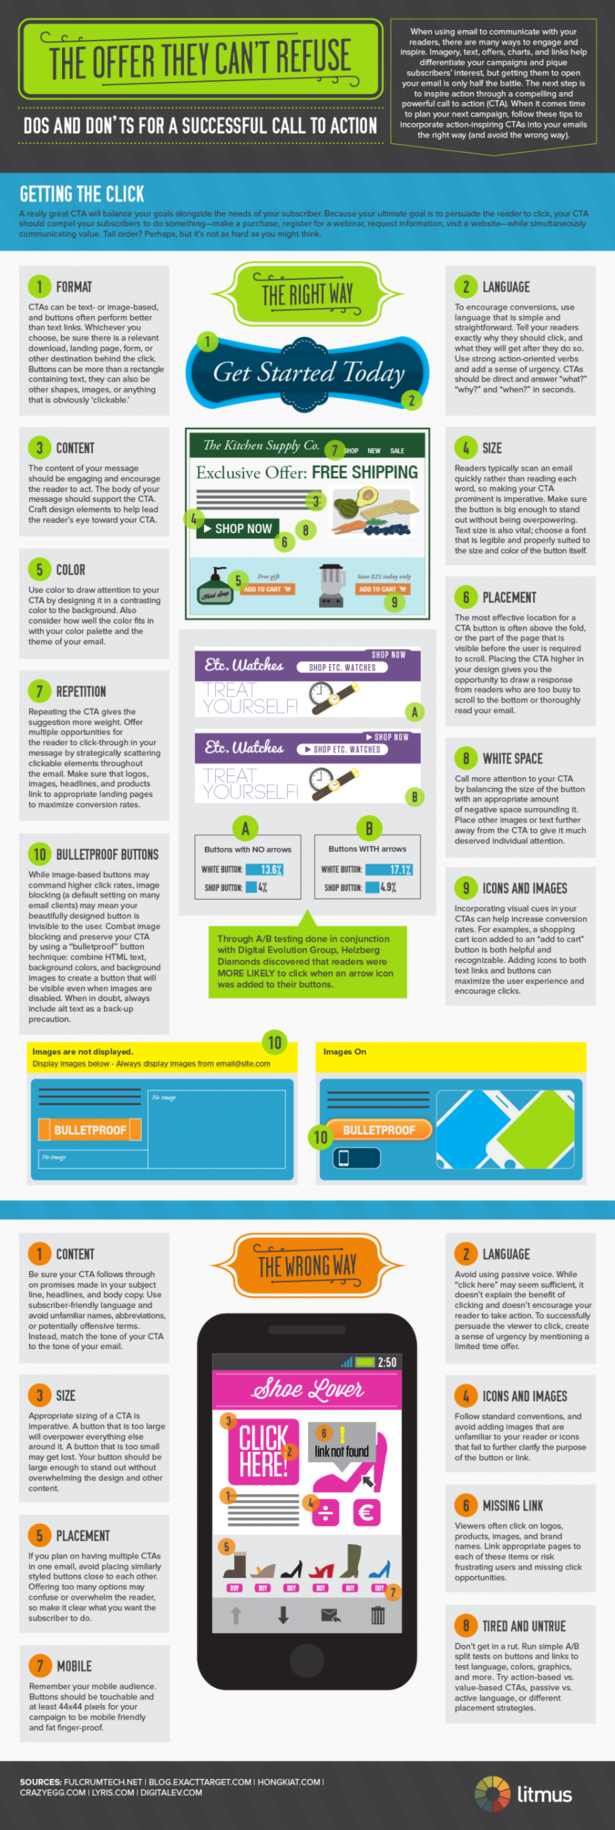 @econsultancy know how to make a great CTA... (but their infographics are a bit too wordy)